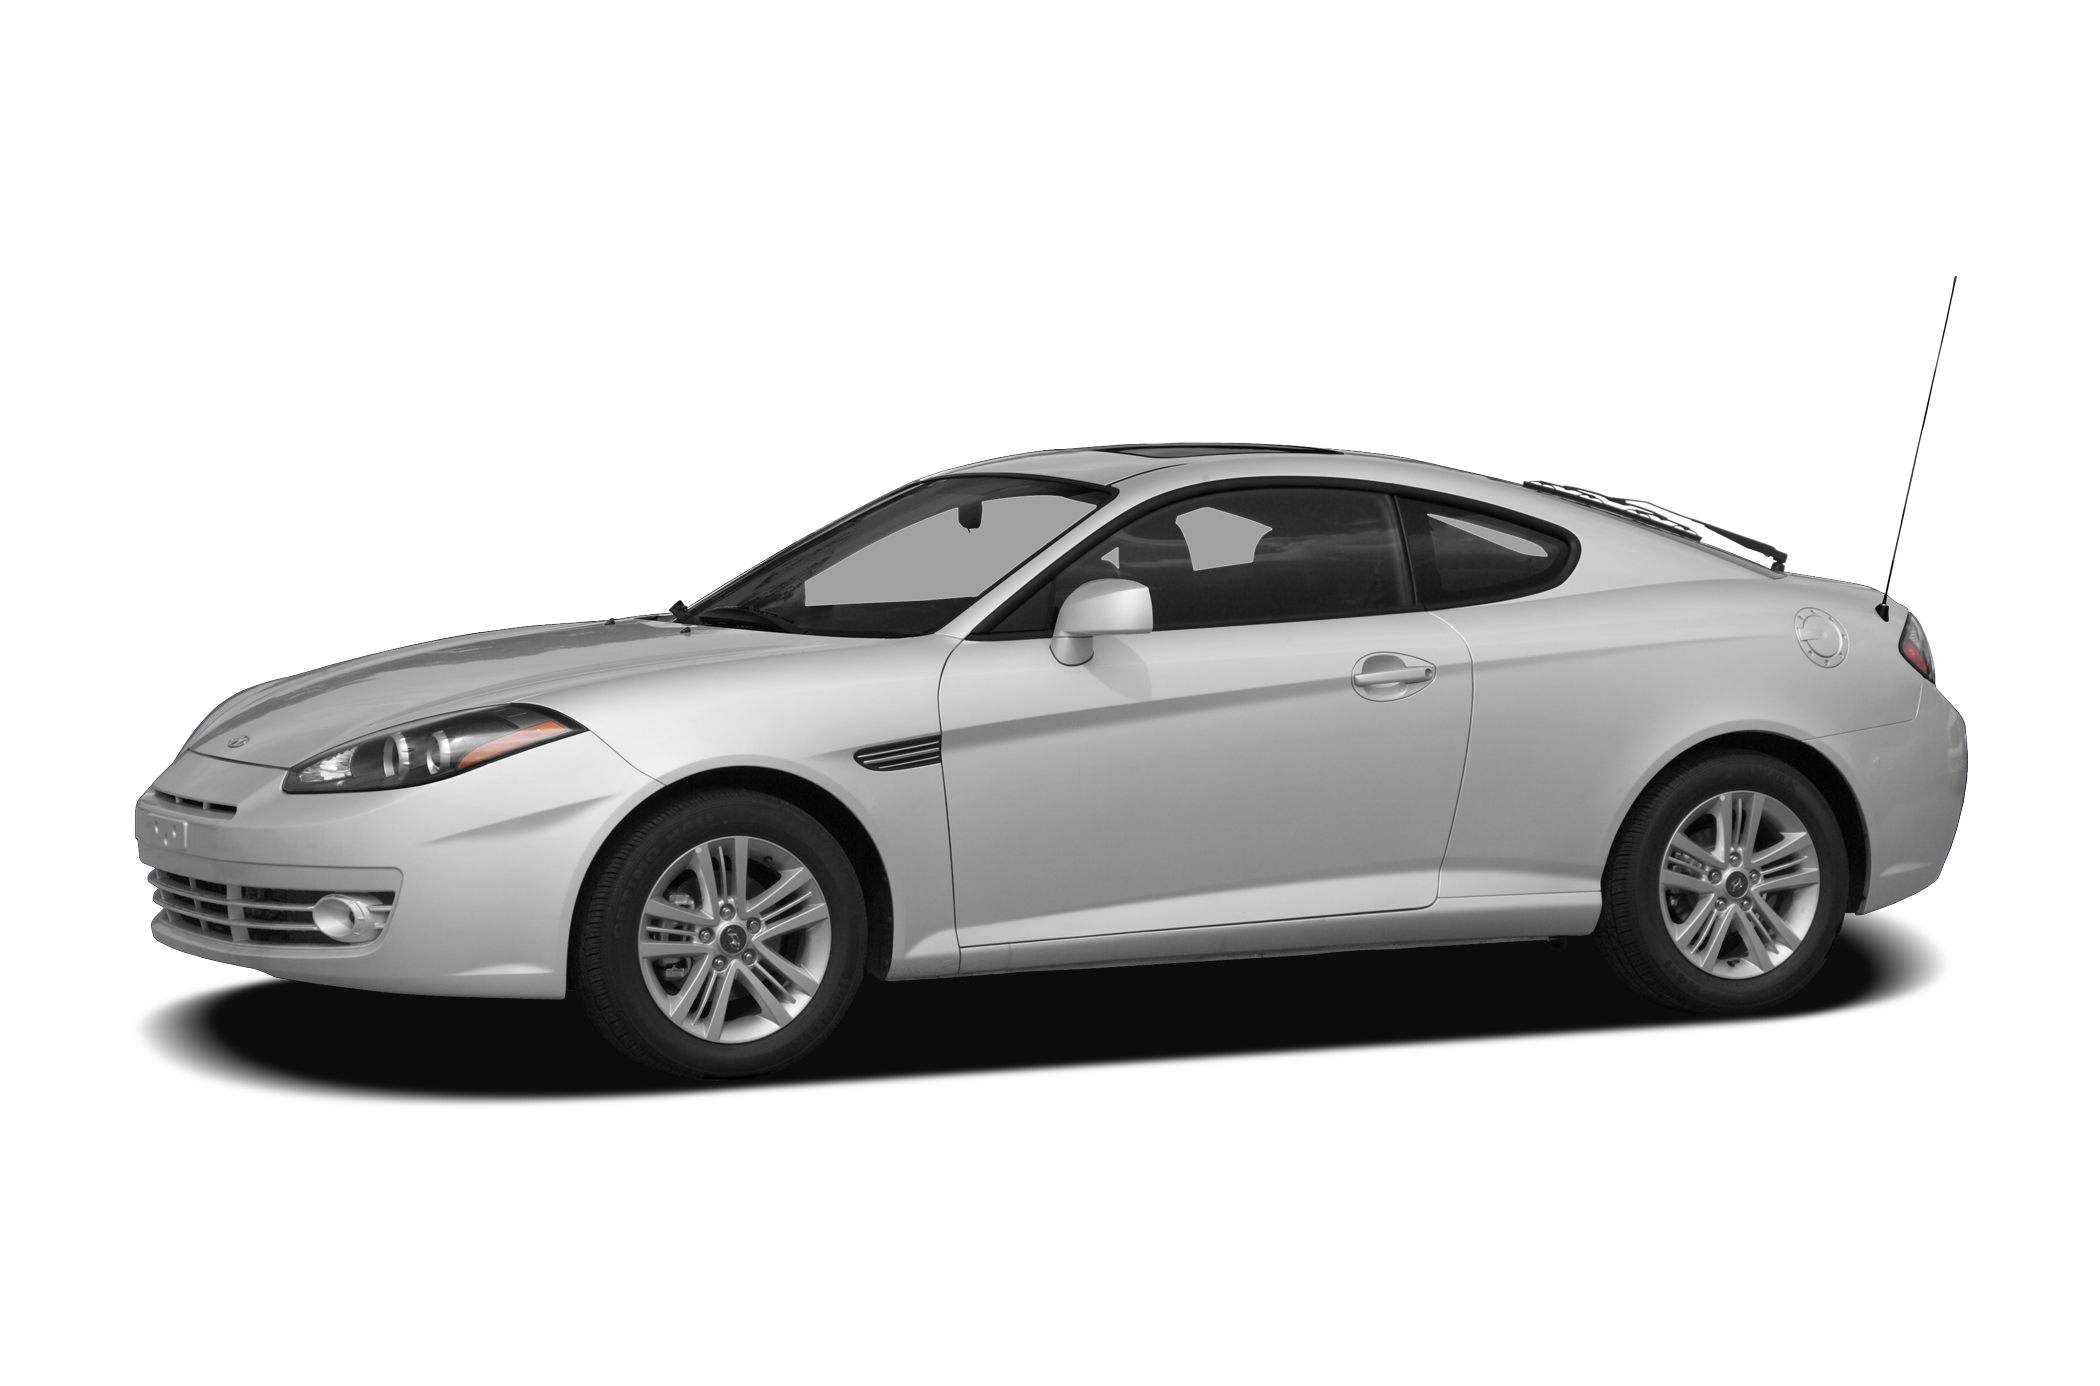 Cars for Sale Under 10000 In Arkansas Luxury Mountain Home Ar Used Cars for Sale Less Than 10 000 Dollars